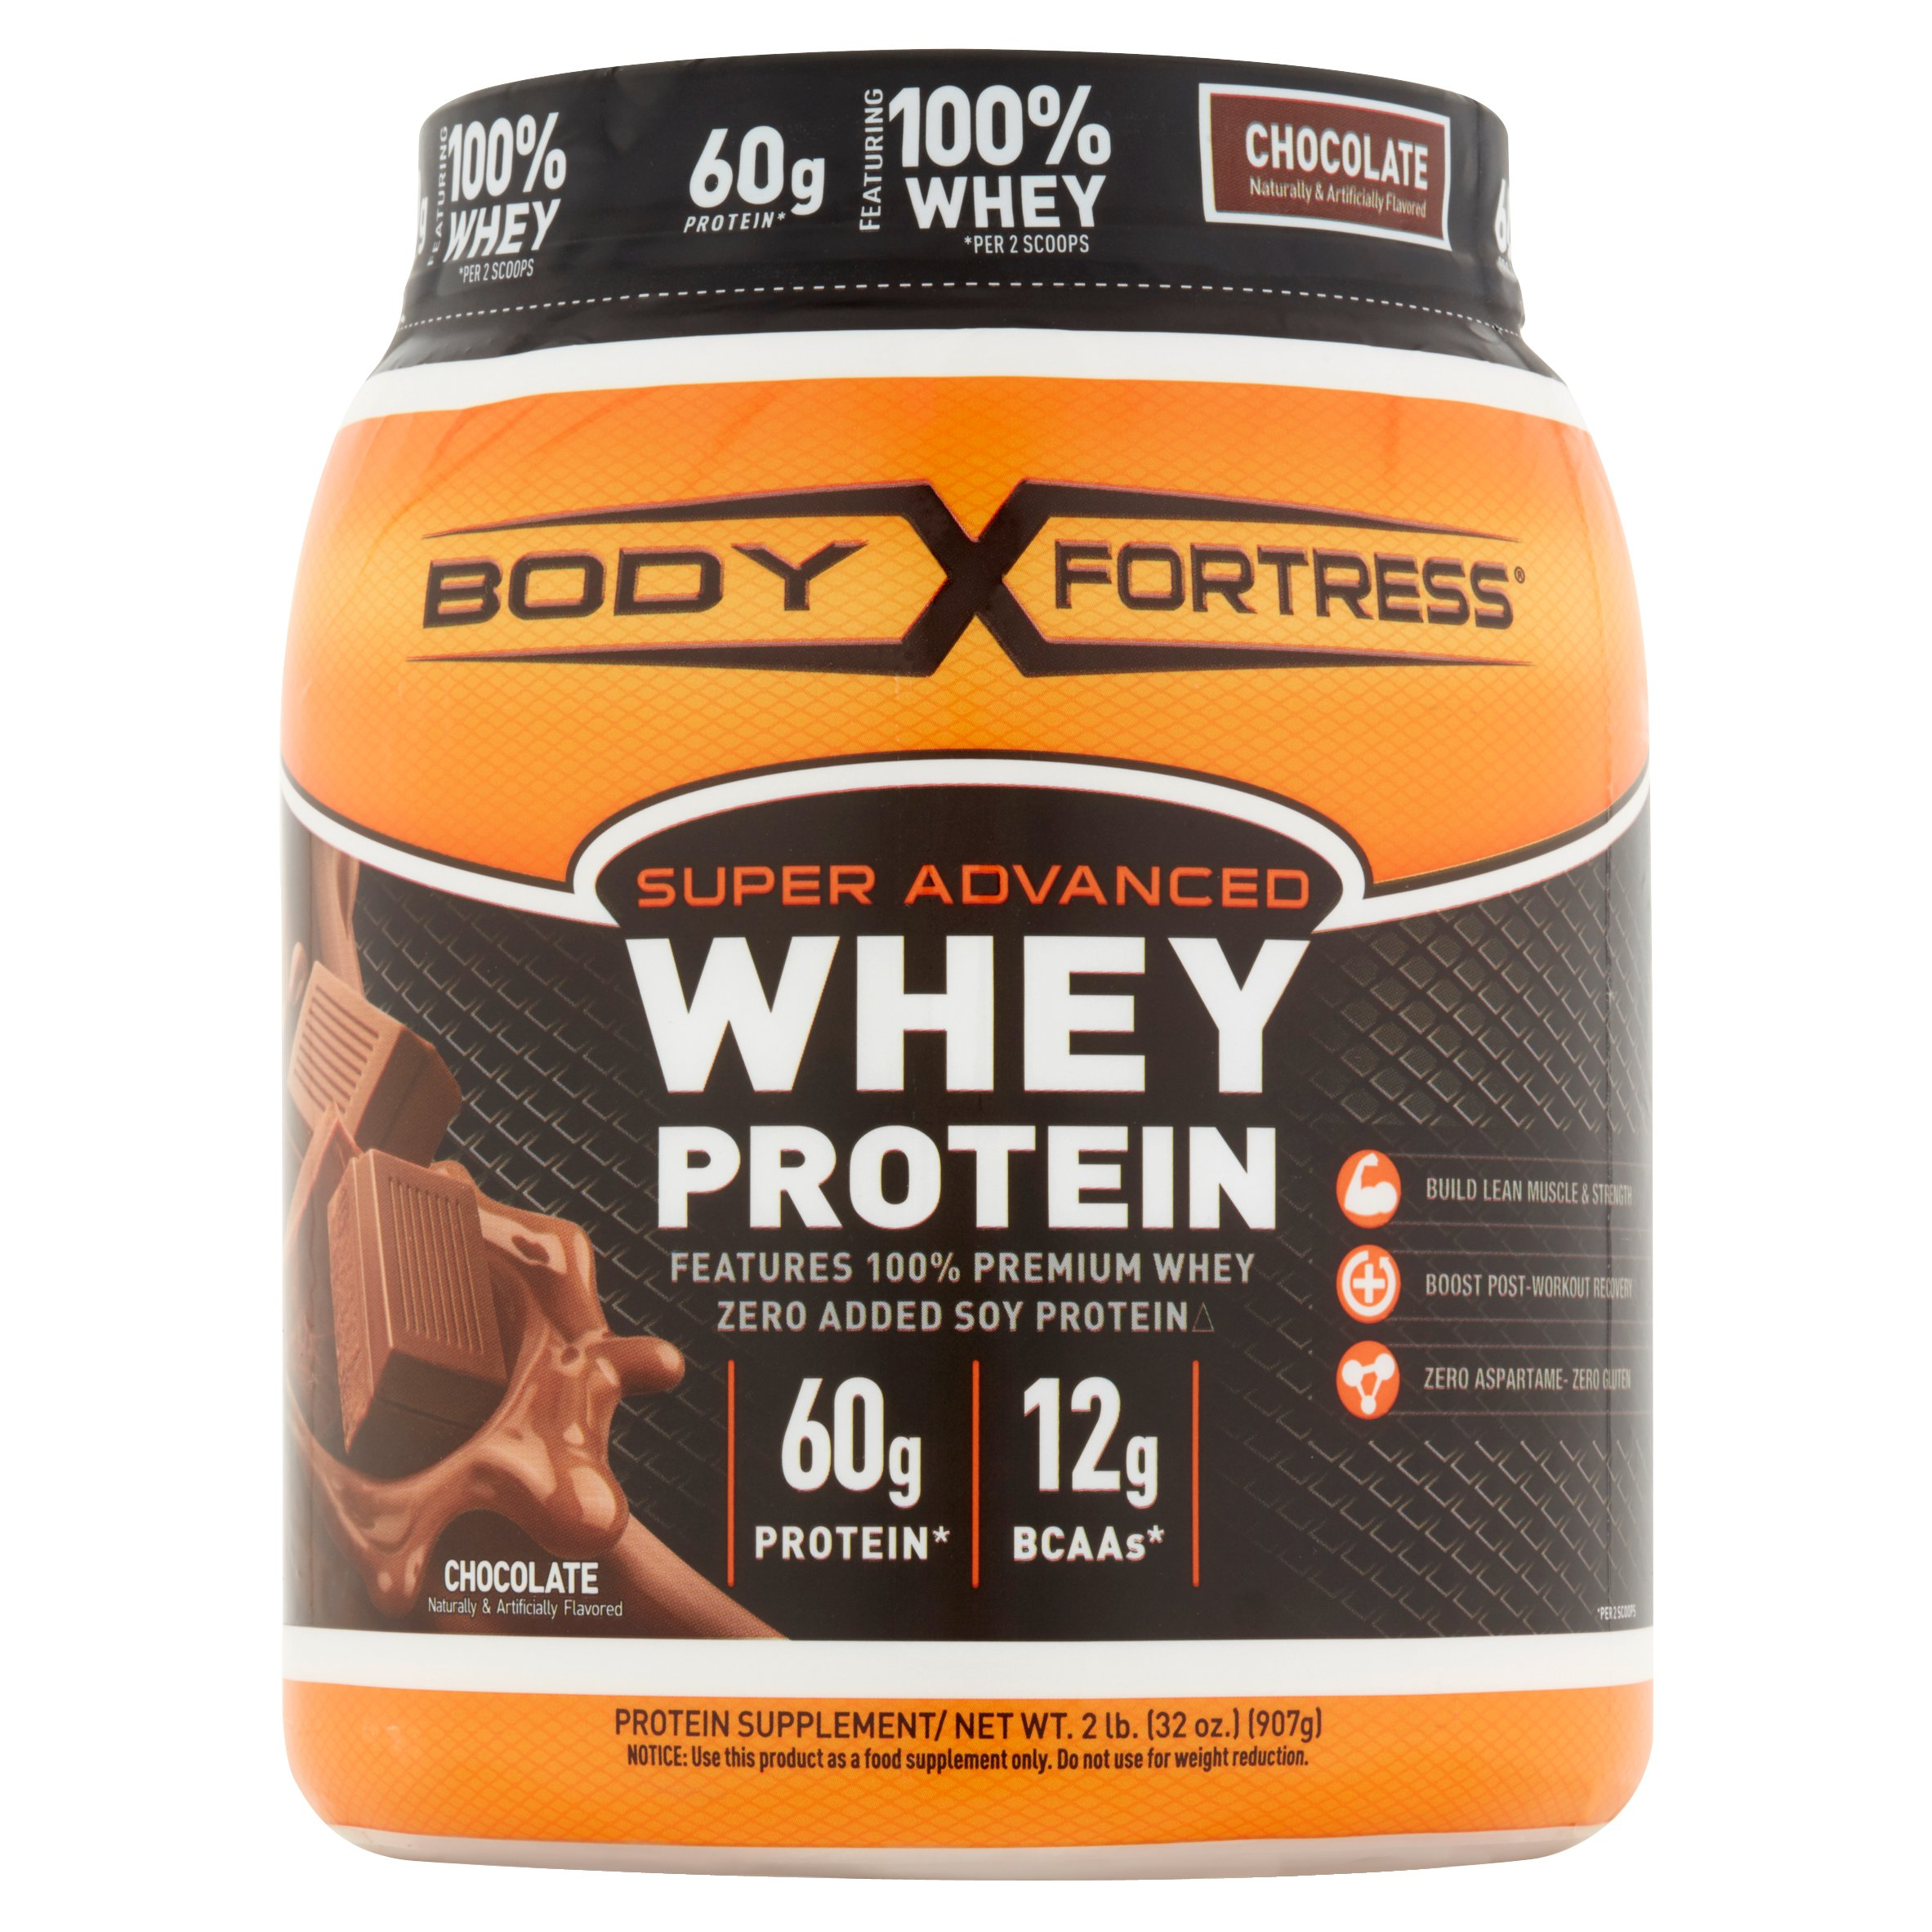 Body Fortress Super Advanced Whey Protein Powder, Chocolate, 60g Protein, 2 Lb